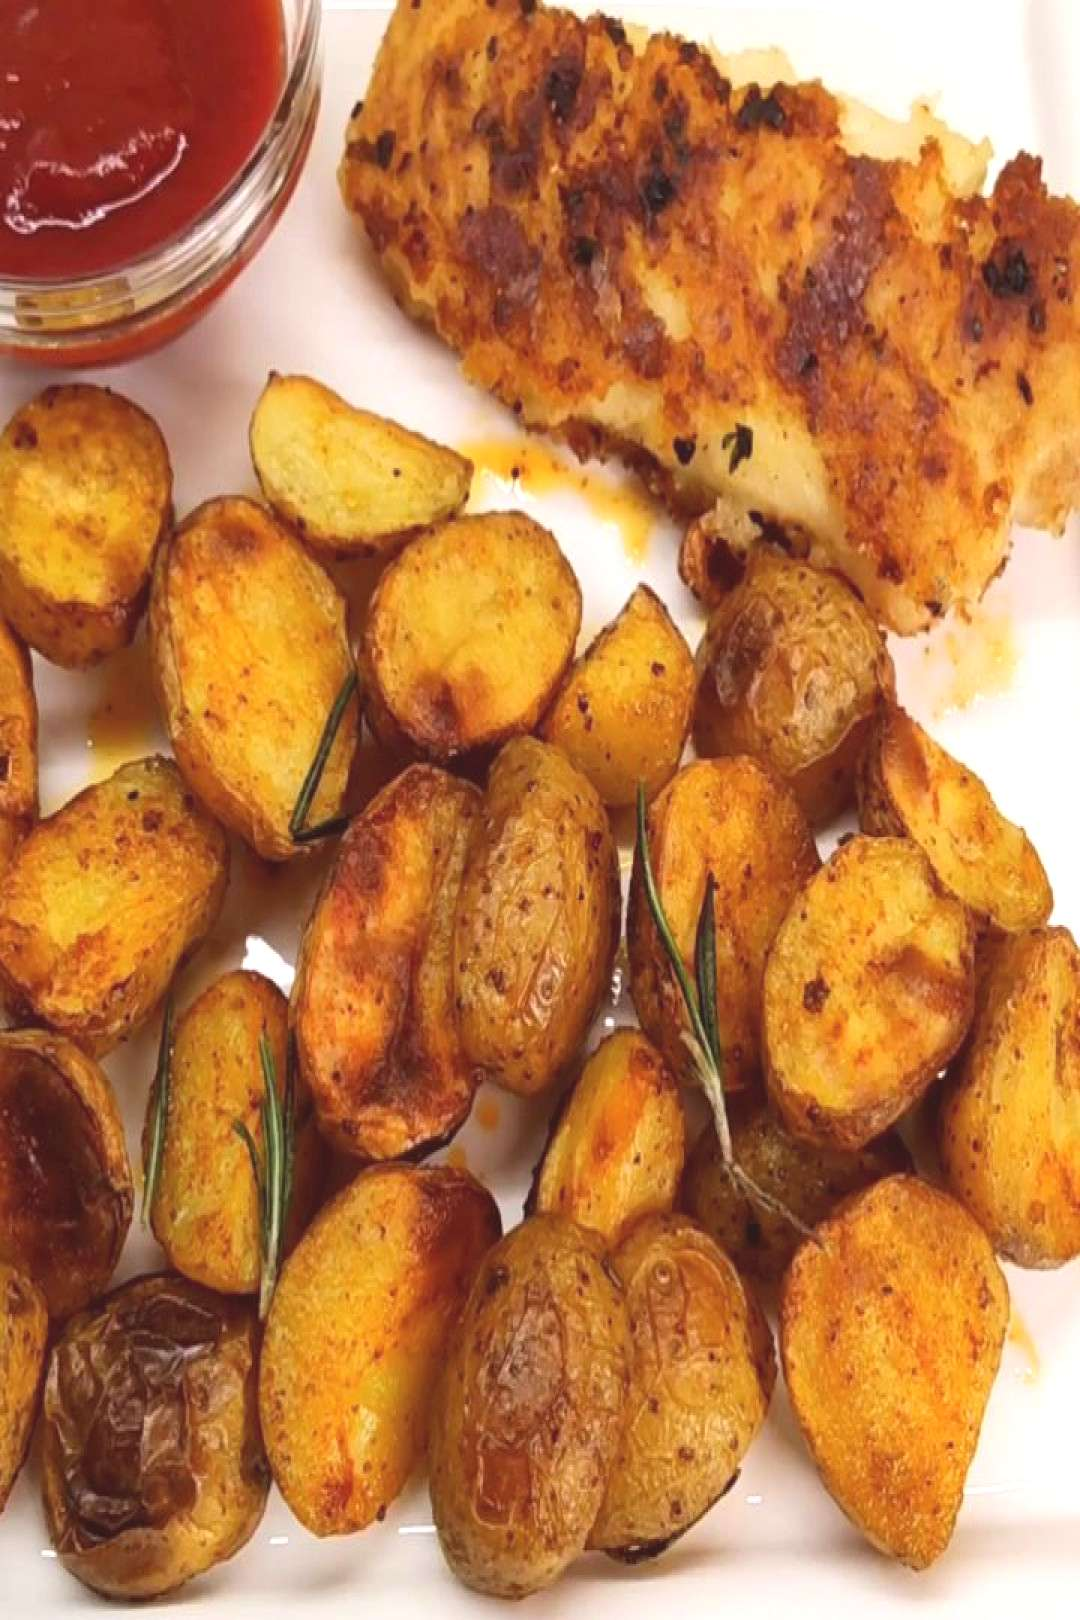 Baked potatoes with italian herbs and fried fish Wonderful evenin